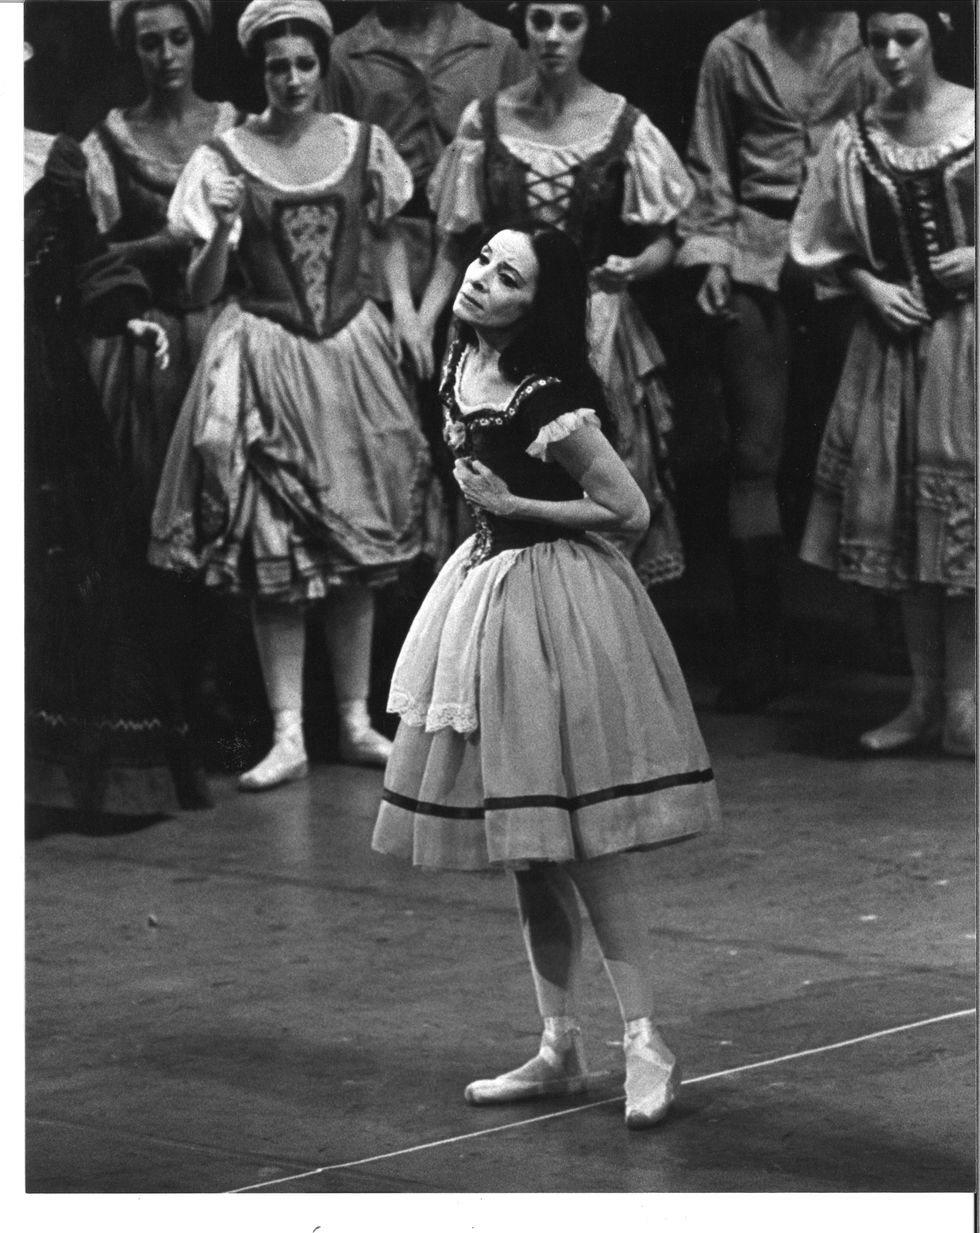 In this black and white photo, a dark haired ballerina in a peasant costume clutches her heart onstage.